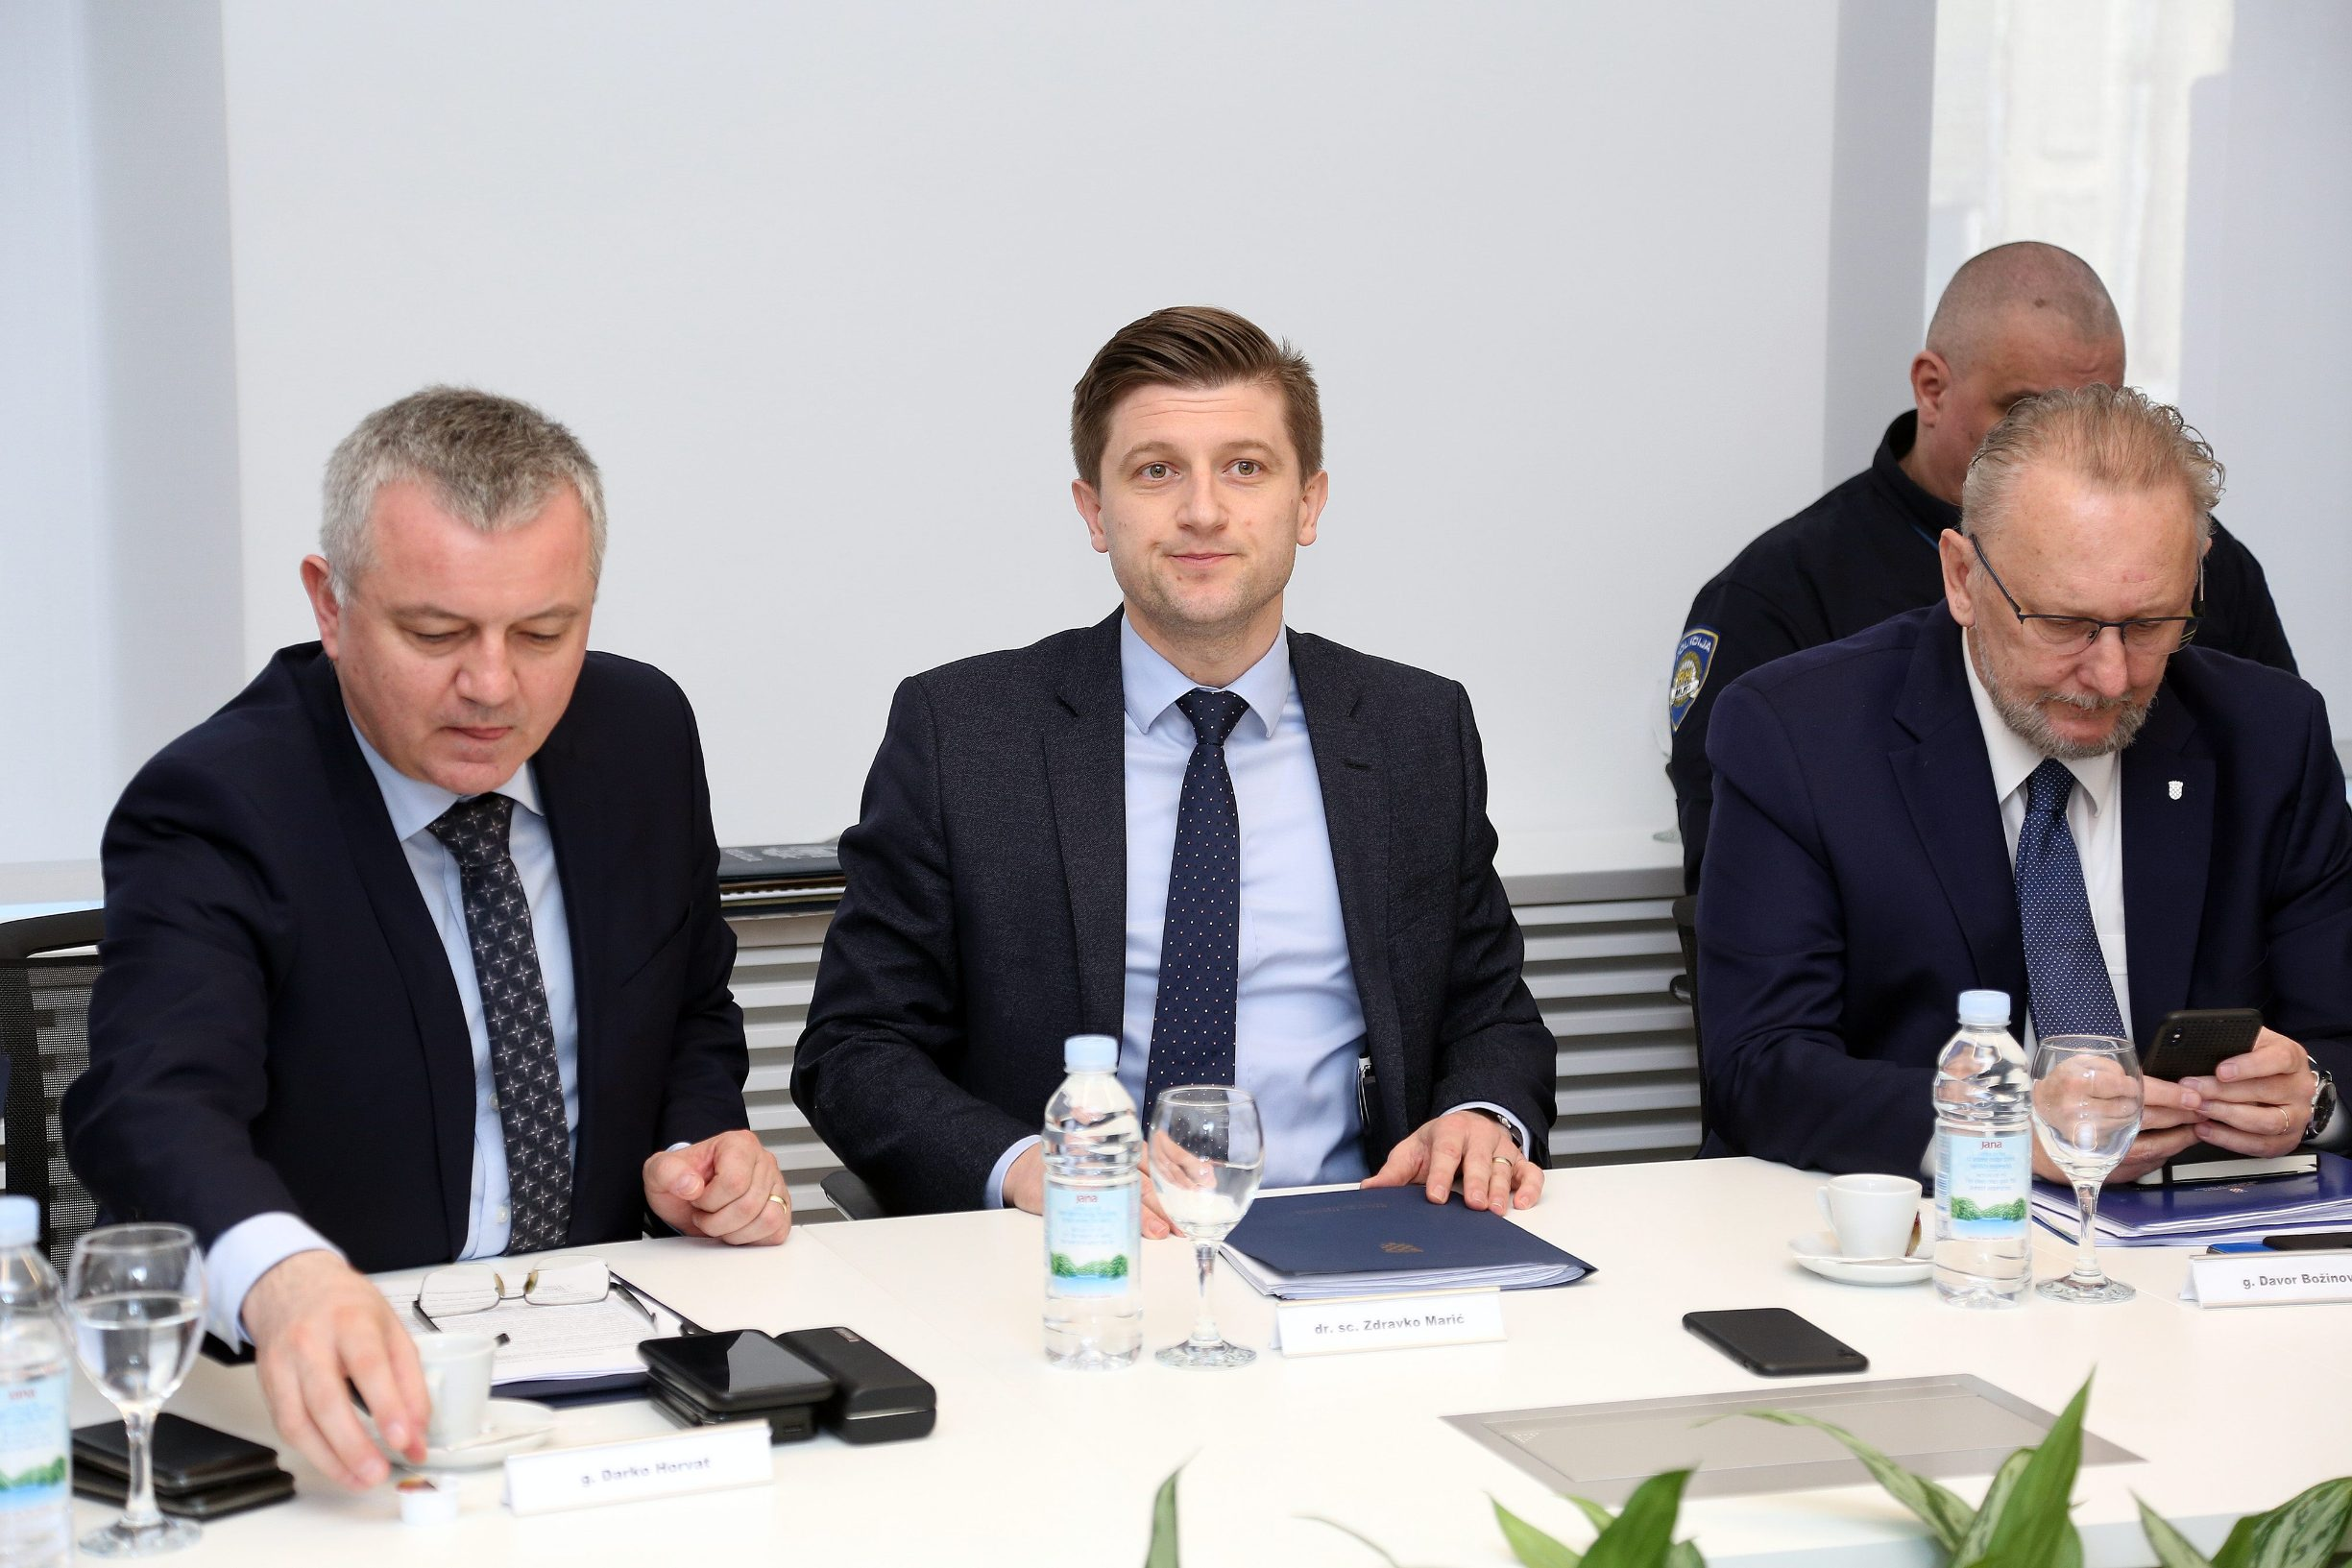 Minister Zdravko Maric meets with employers about measures taken by the Government over the effects of the coronavirus on the economy. On the photo: Economy Minister Darko Horvat, Finance Minister Zdravko Maric, Interior Minister Davor Bozinovic